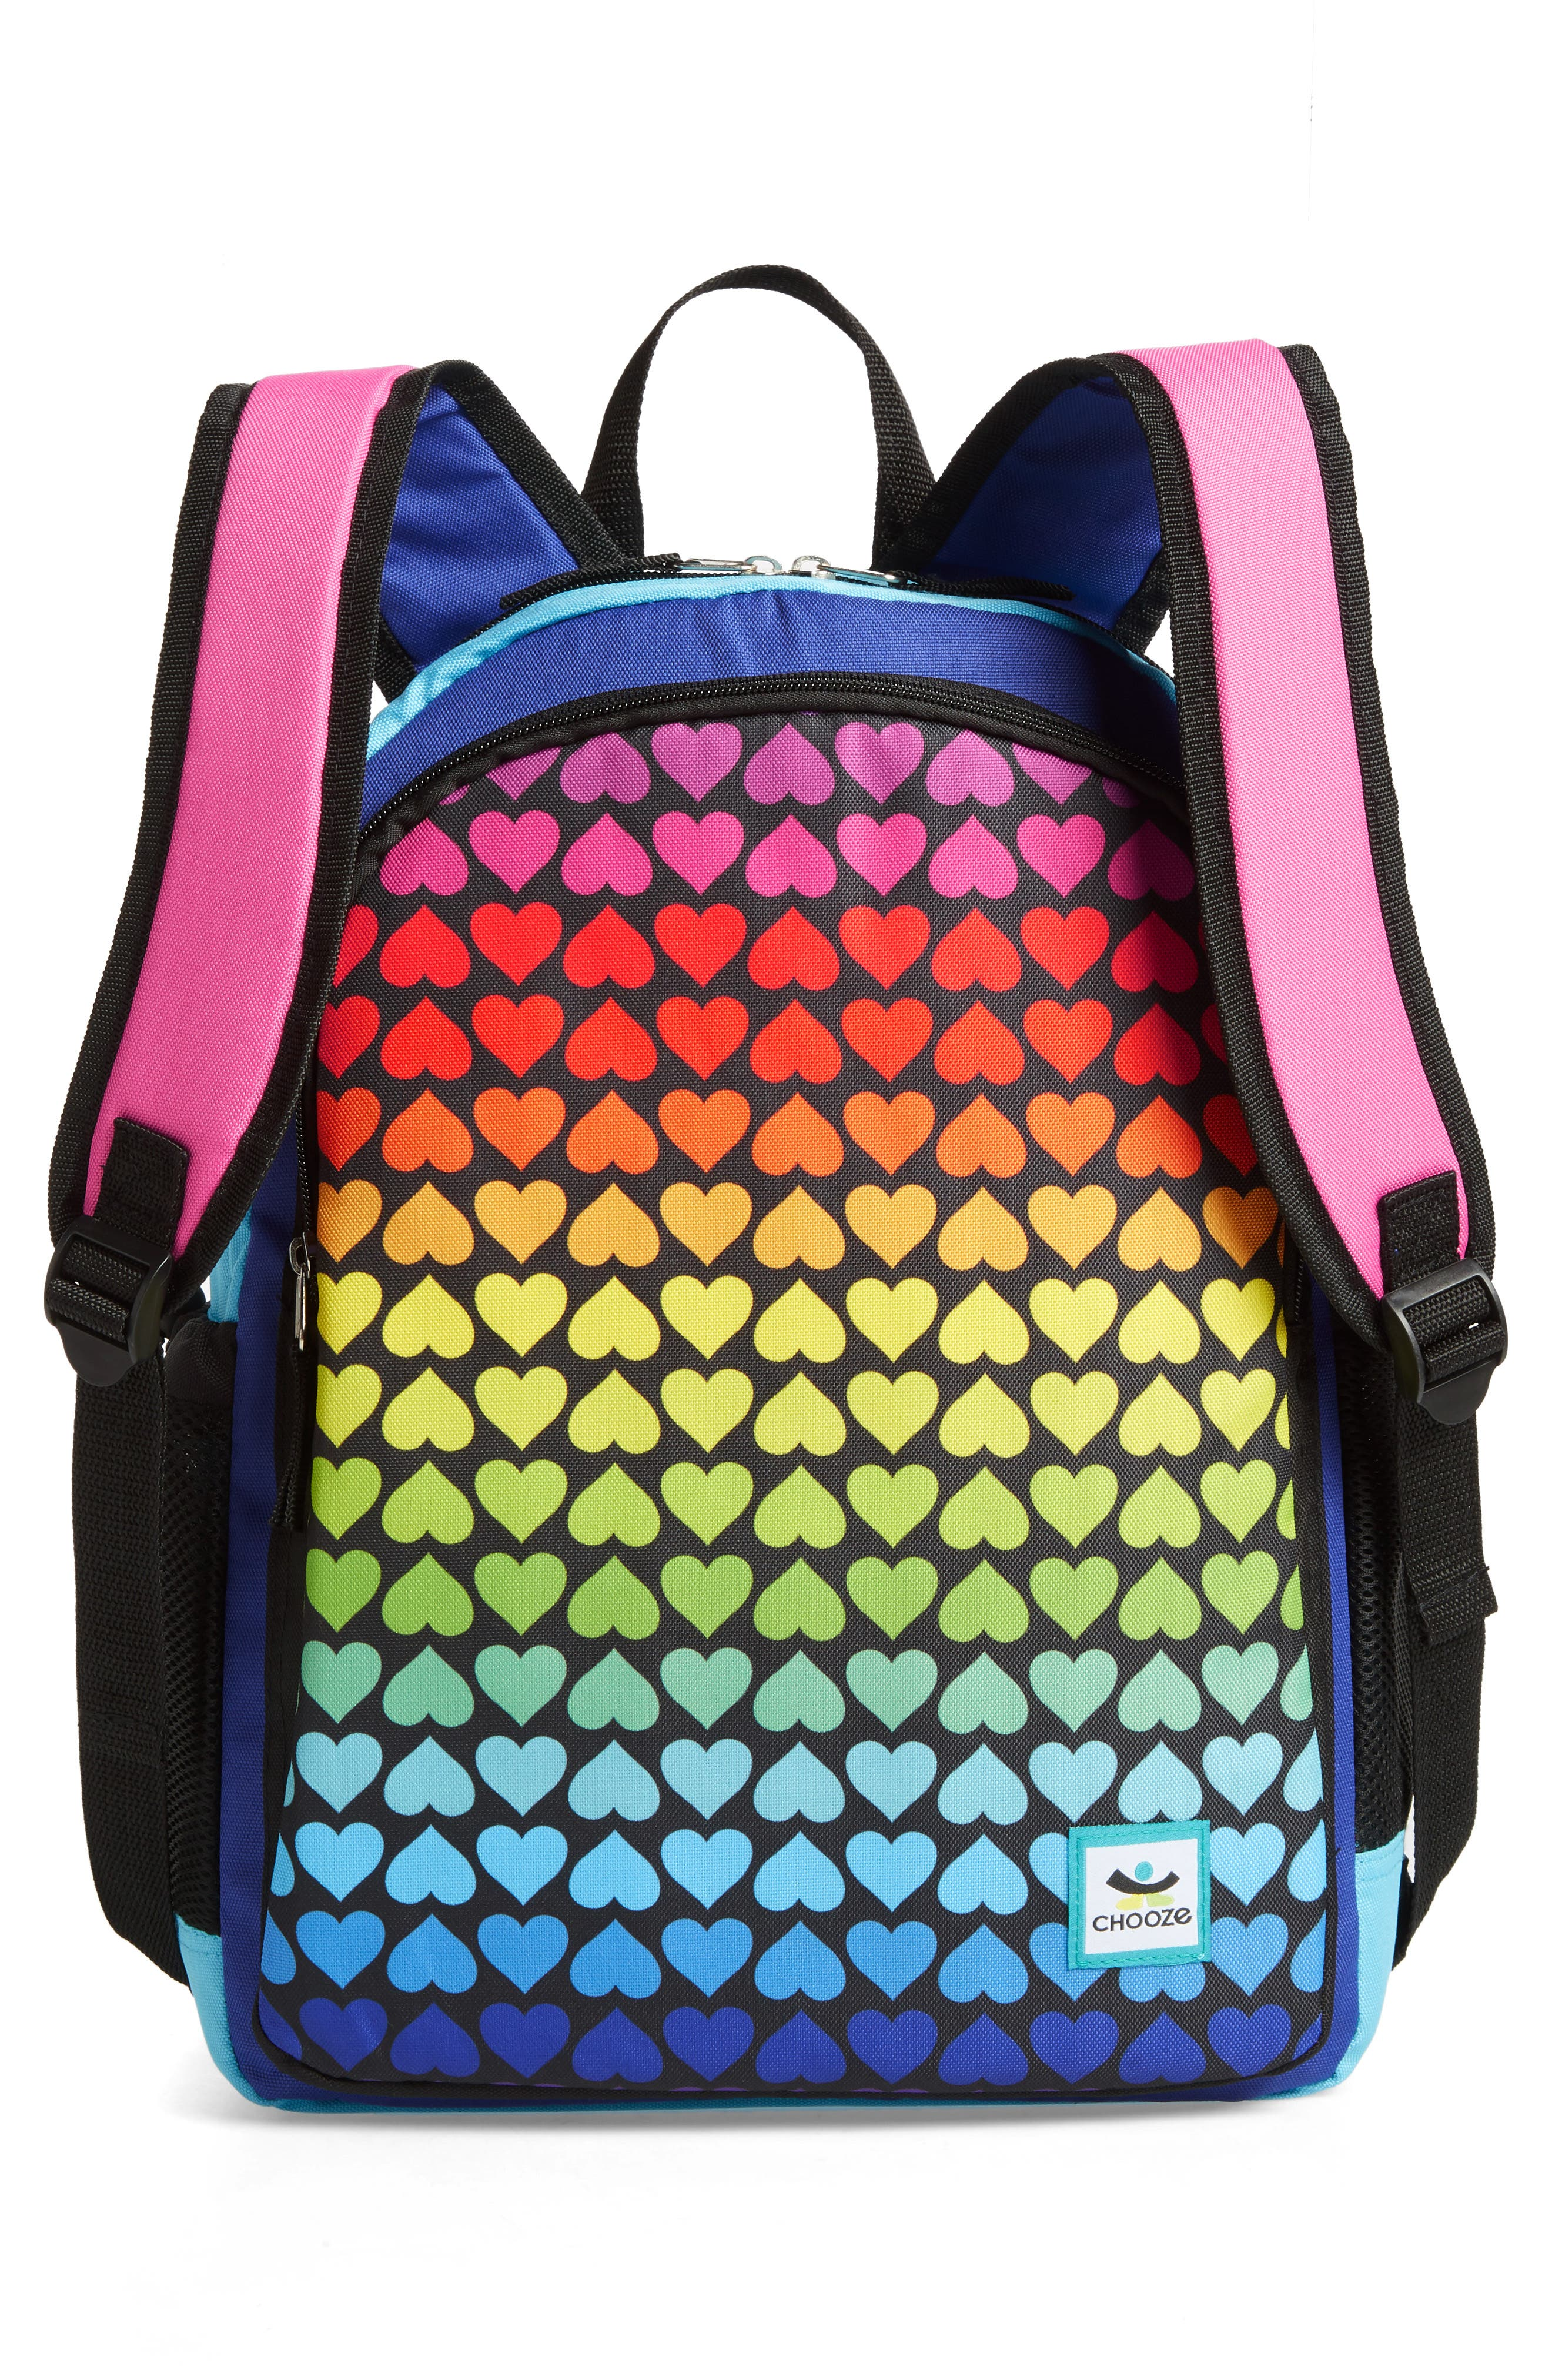 Hue Rainbow Reversible Backpack,                             Alternate thumbnail 3, color,                             001